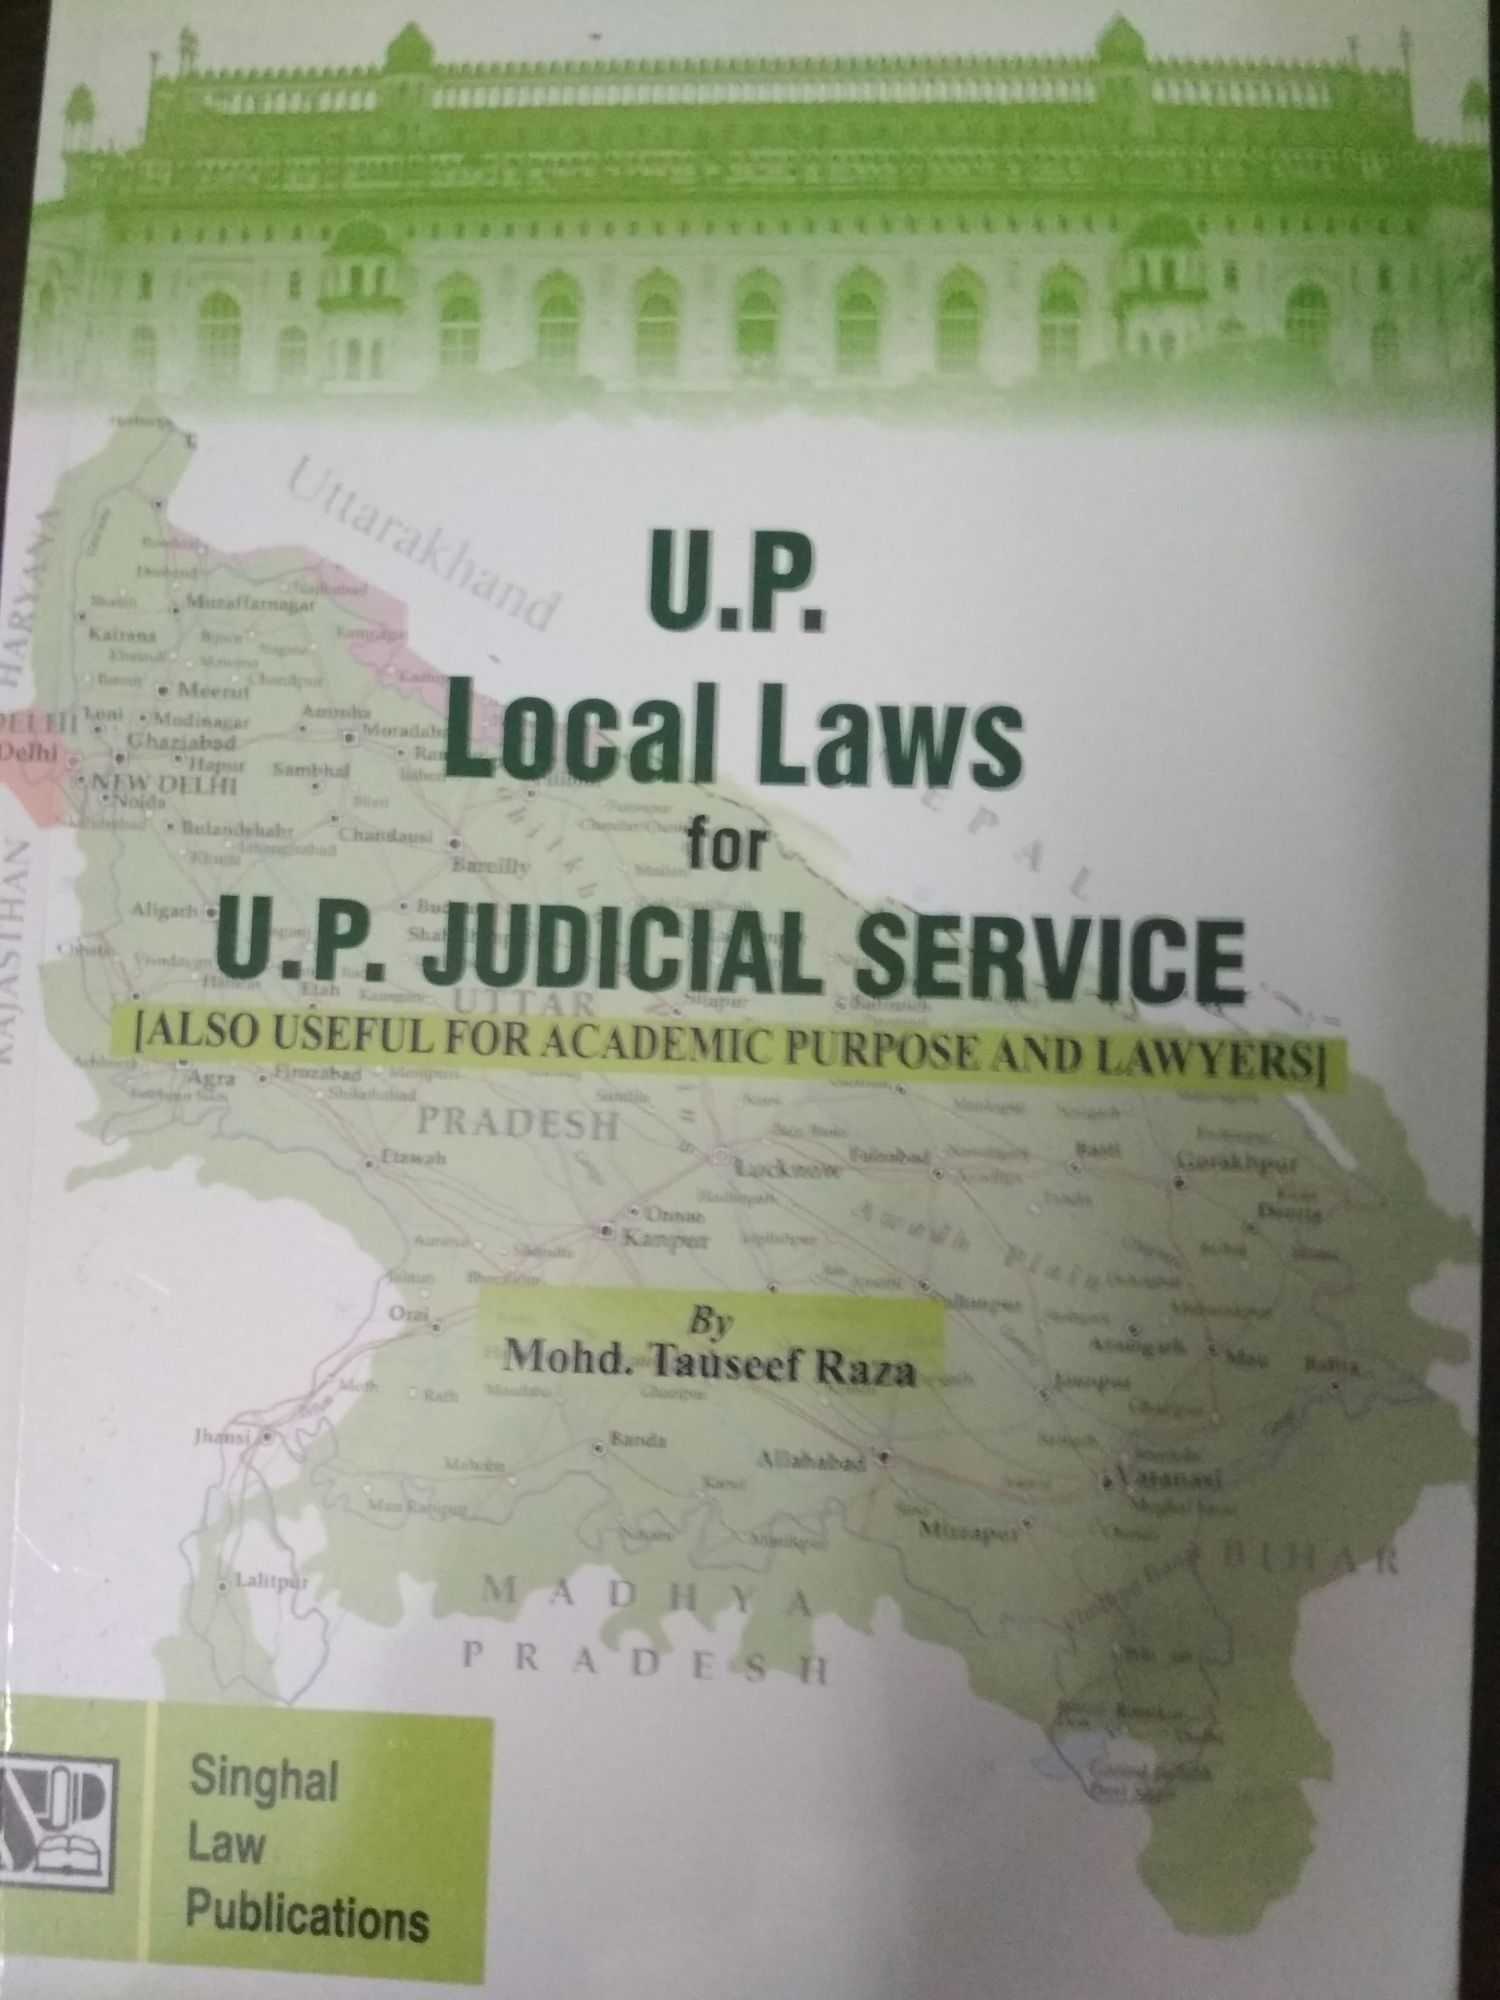 U.P. Local Laws For U.P. Judicial Service